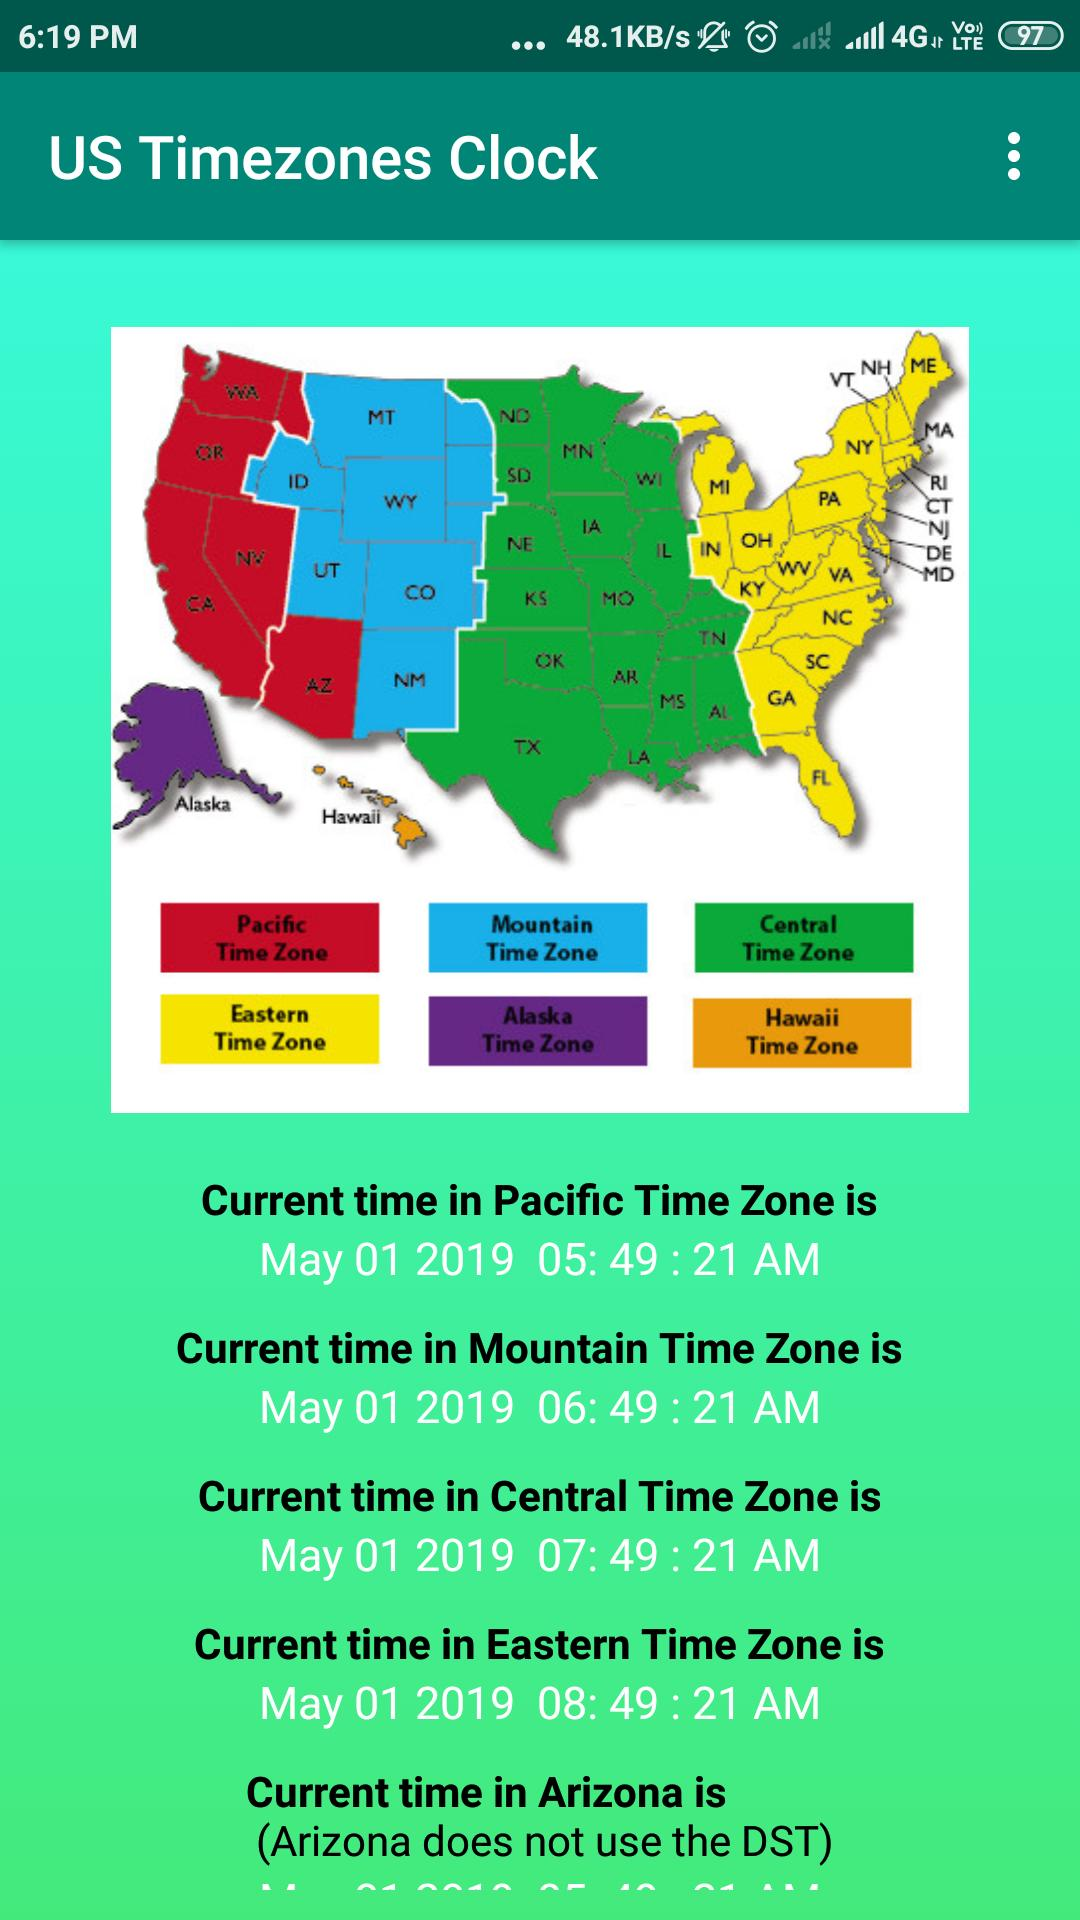 US Timezones Clock for Android - APK Download